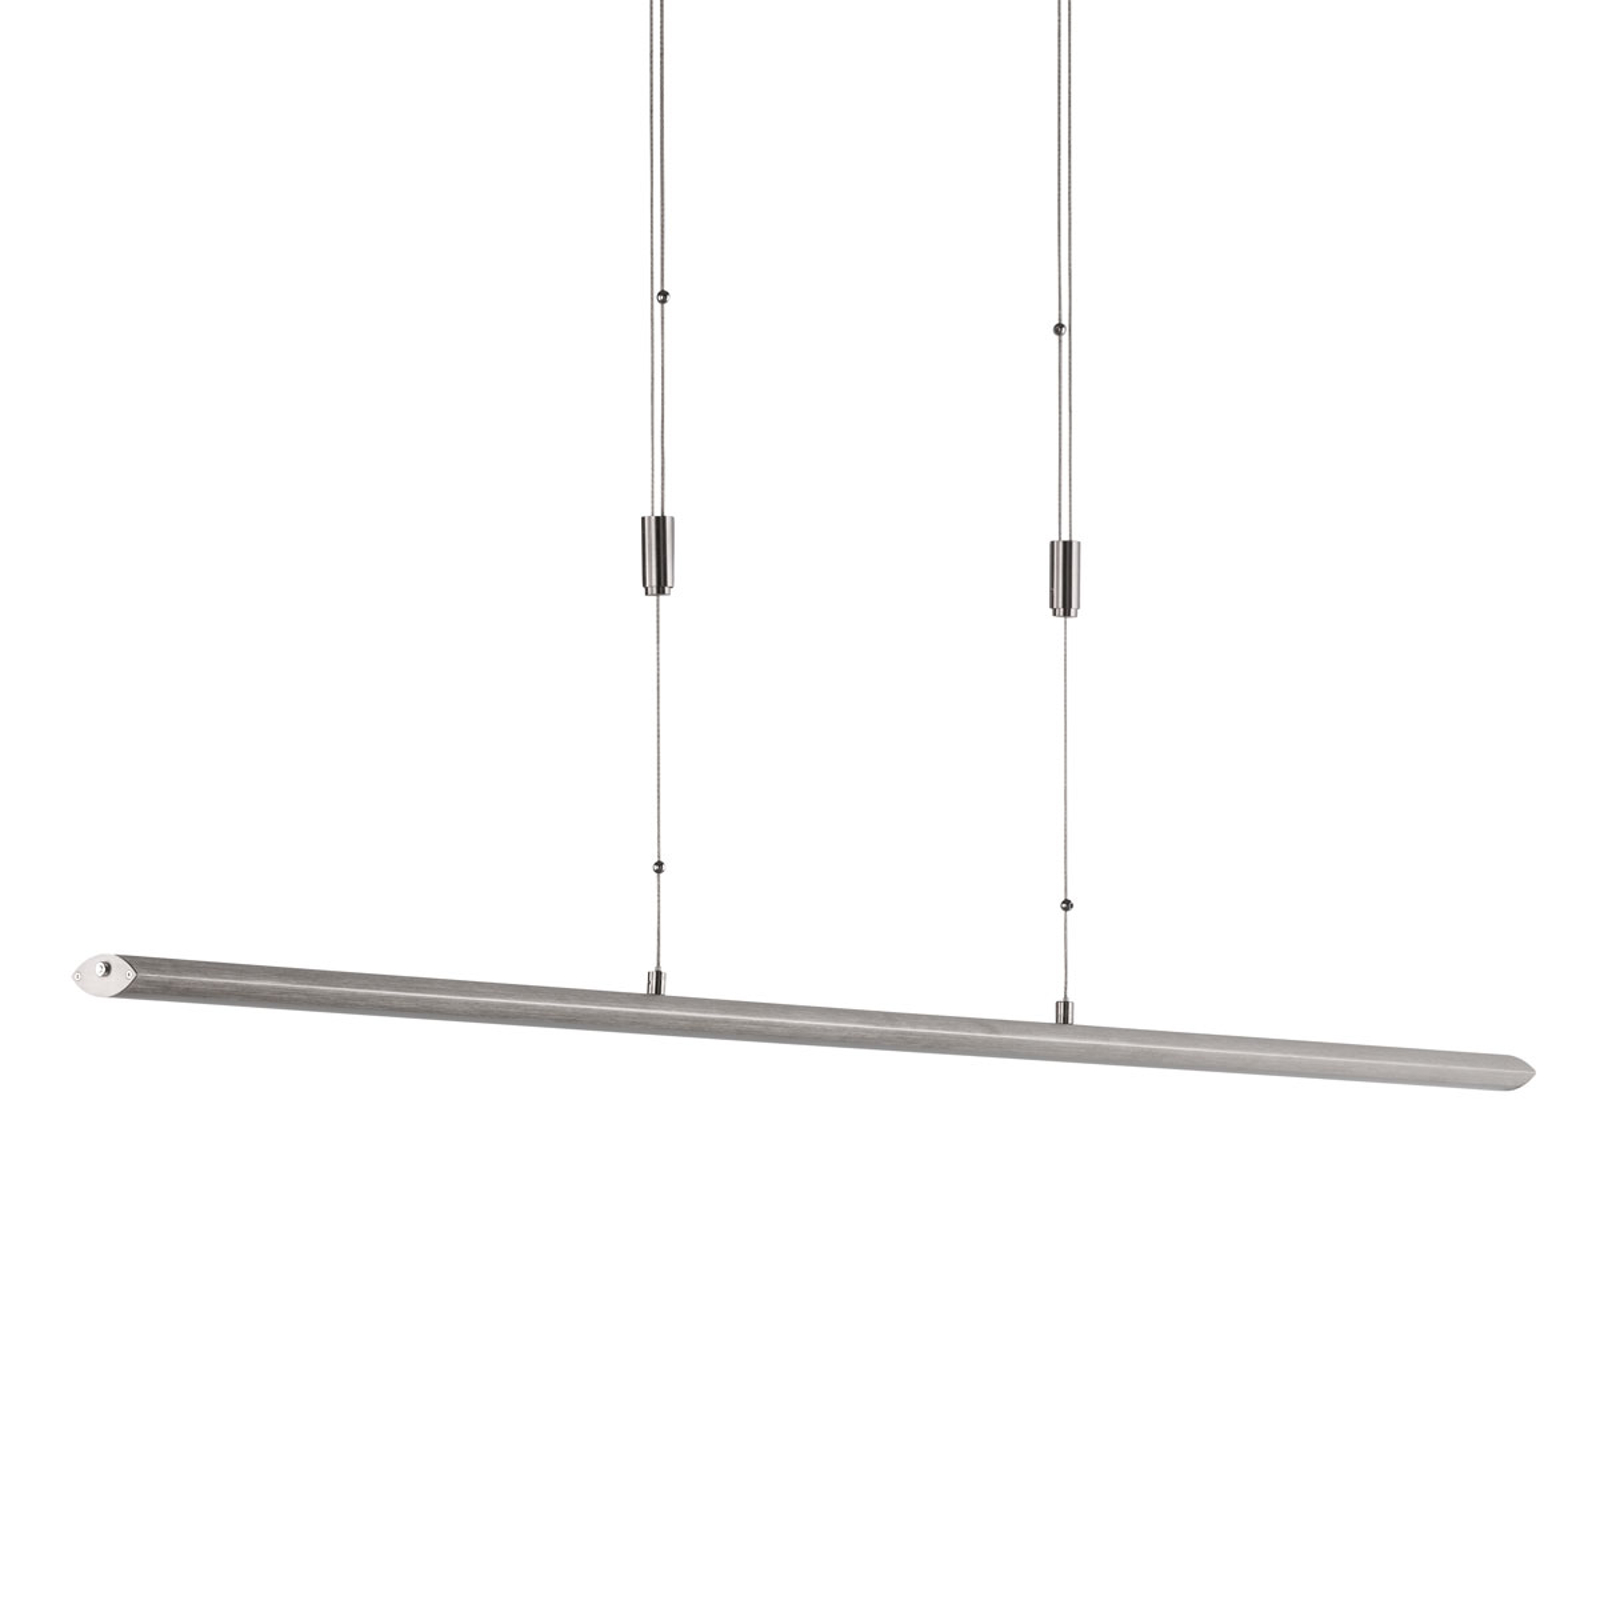 Suspension LED Beat variateur d'intensité, 140 cm